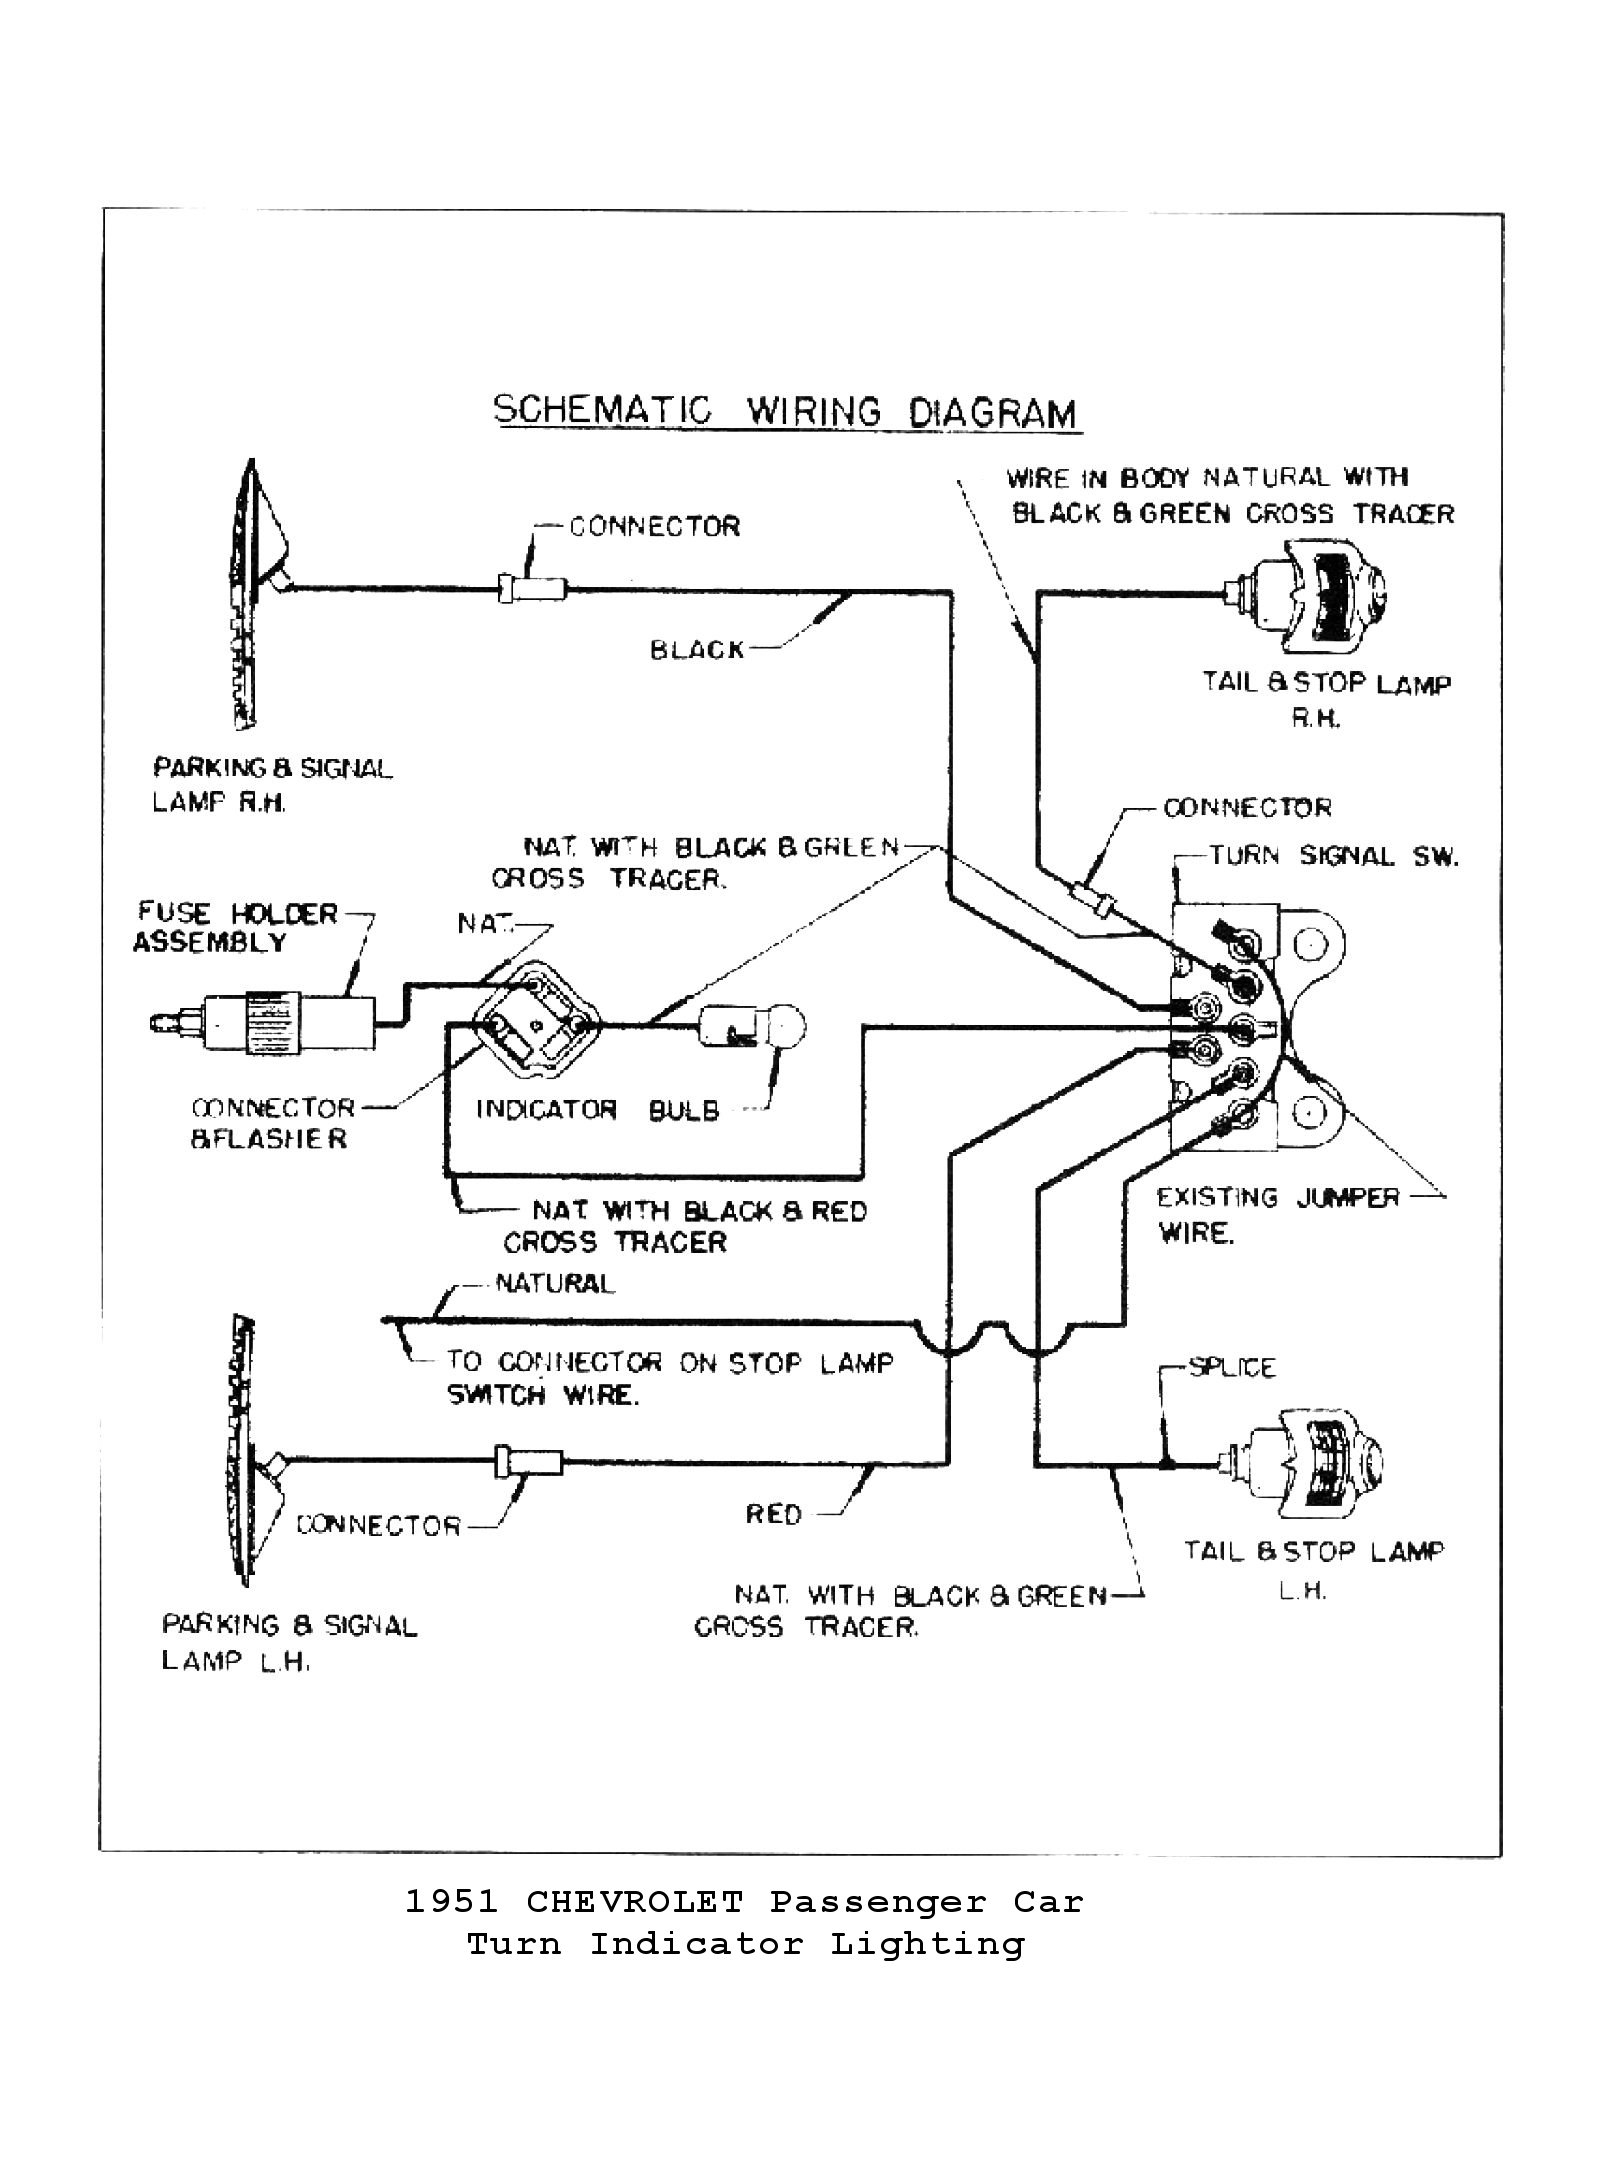 Chevy Tail Light Wiring Diagram Free Picture | Manual E-Books - Chevy Express Tail Light Wiring Diagram